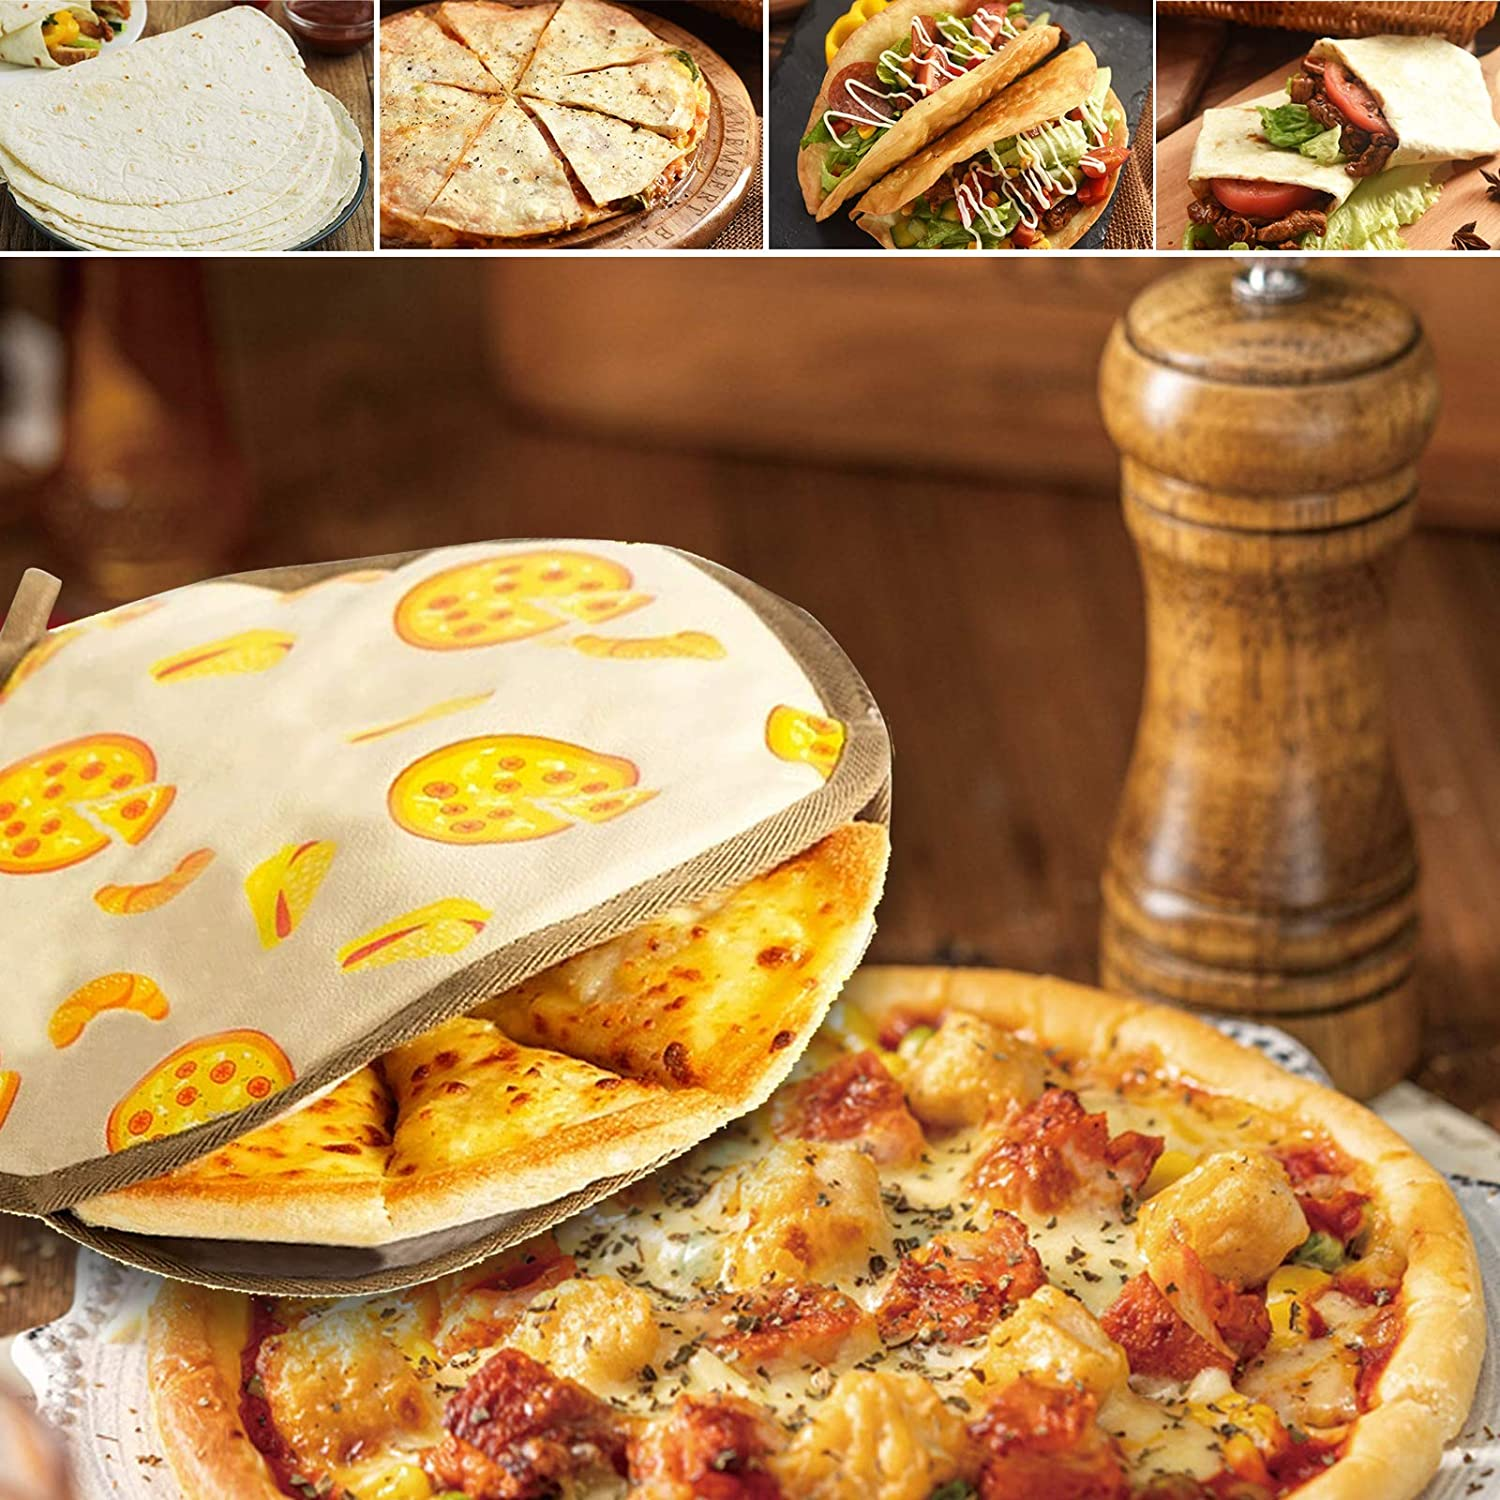 """Yellow Pizza Fabric Pouch to Keep Tortillas soft and Warm for up to One Hour for Flour Tortillas Naan Bread Taohuakai 2 Pack Tortilla Warmer 12/"""" Insulated and Microwaveable"""